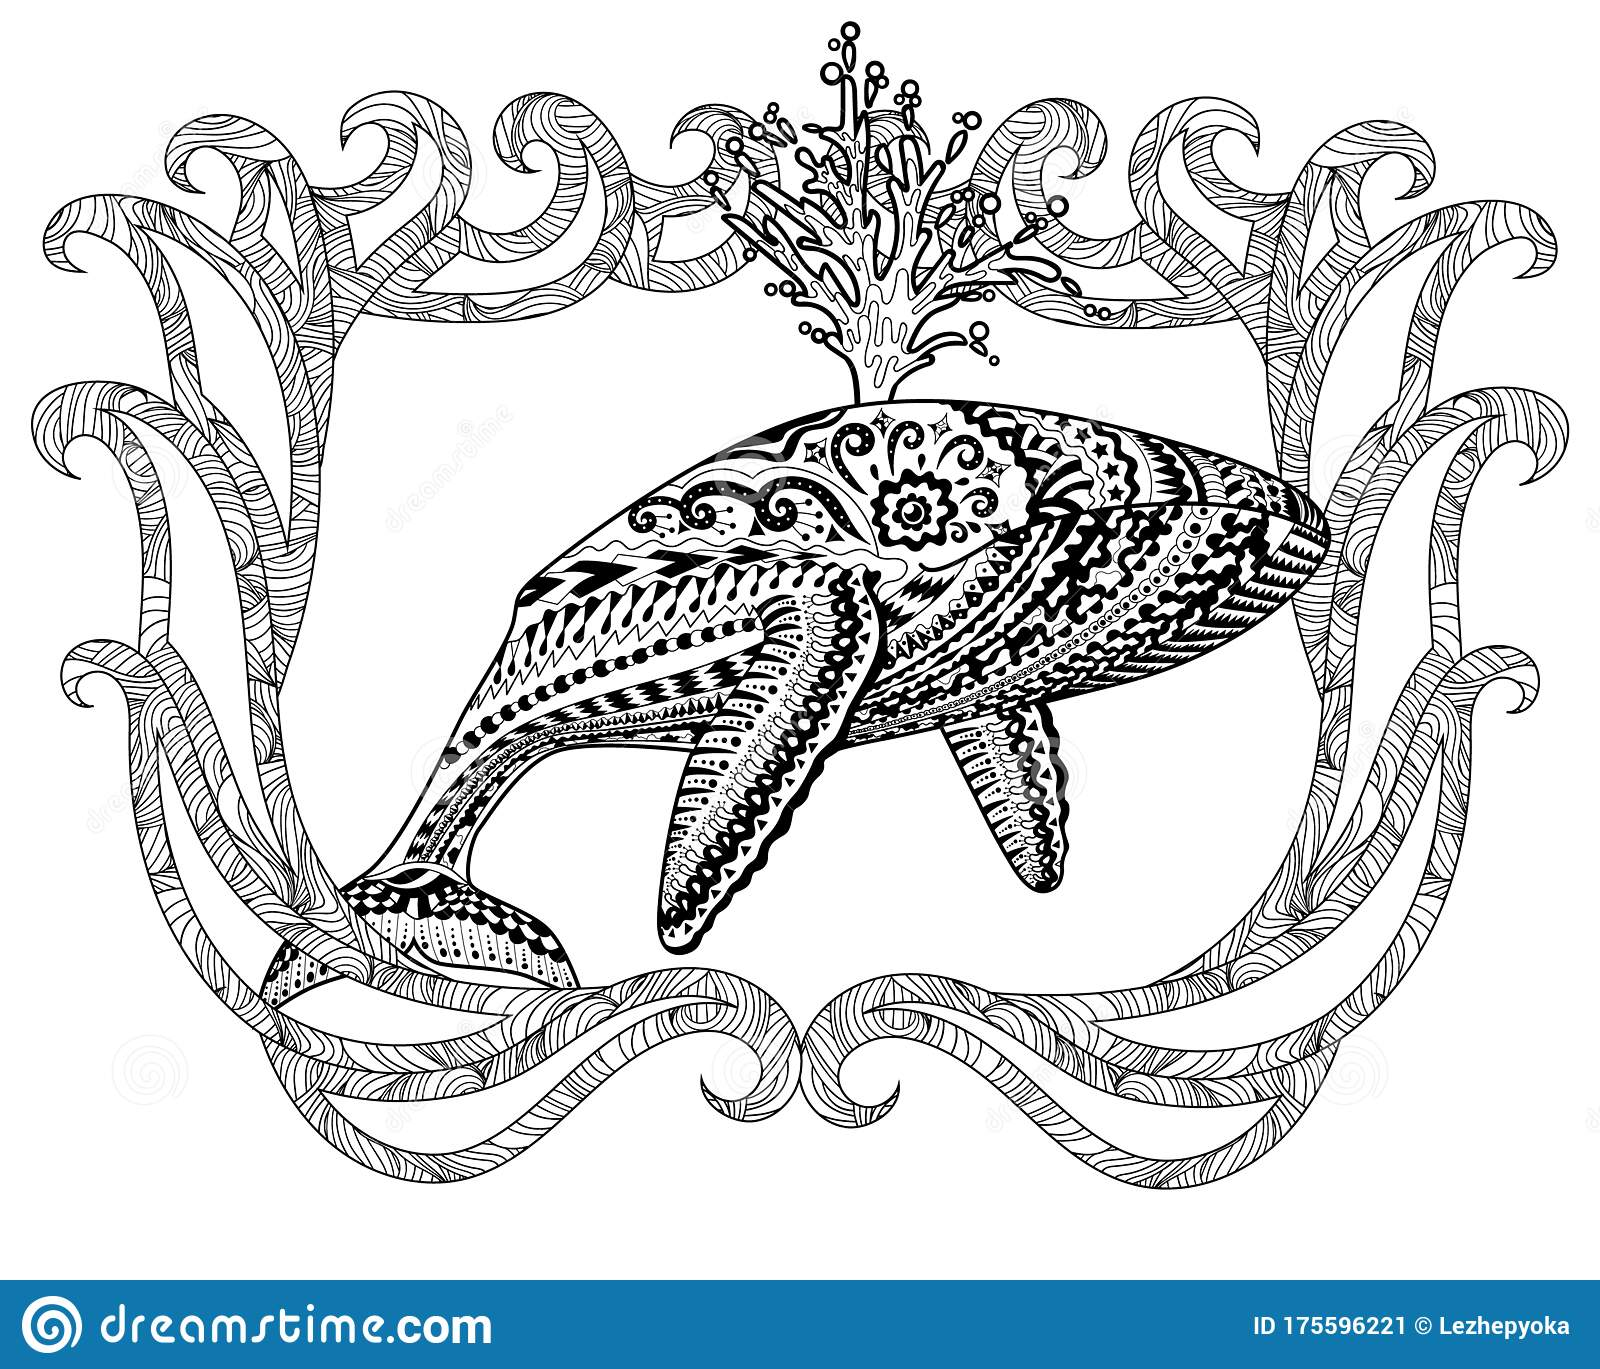 Blue Whale Coloring Page (With images) | Whale coloring pages | 1369x1600